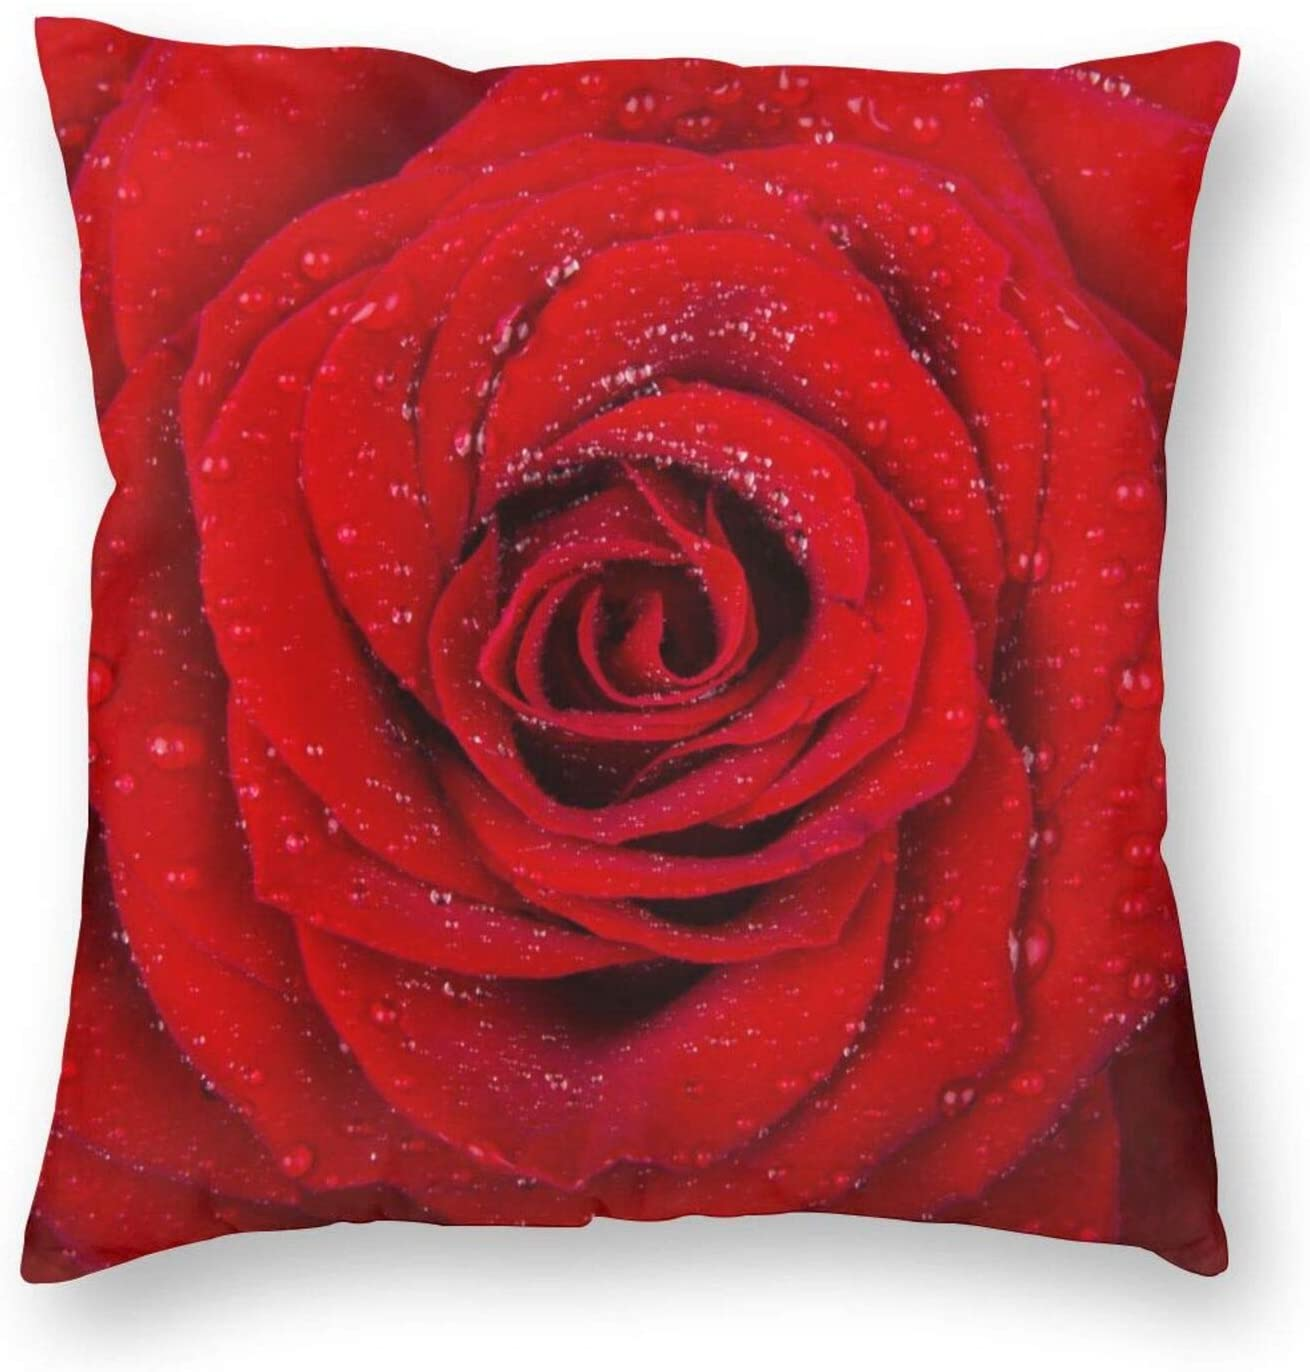 Yaateeh Red Rose with Water Drop Decorative Throw Pillow Covers 18x18 Inch Pillows Case Square Cushion Cover Cases Pillowcase Sofa Home Decor for Couch Bed Patio Car